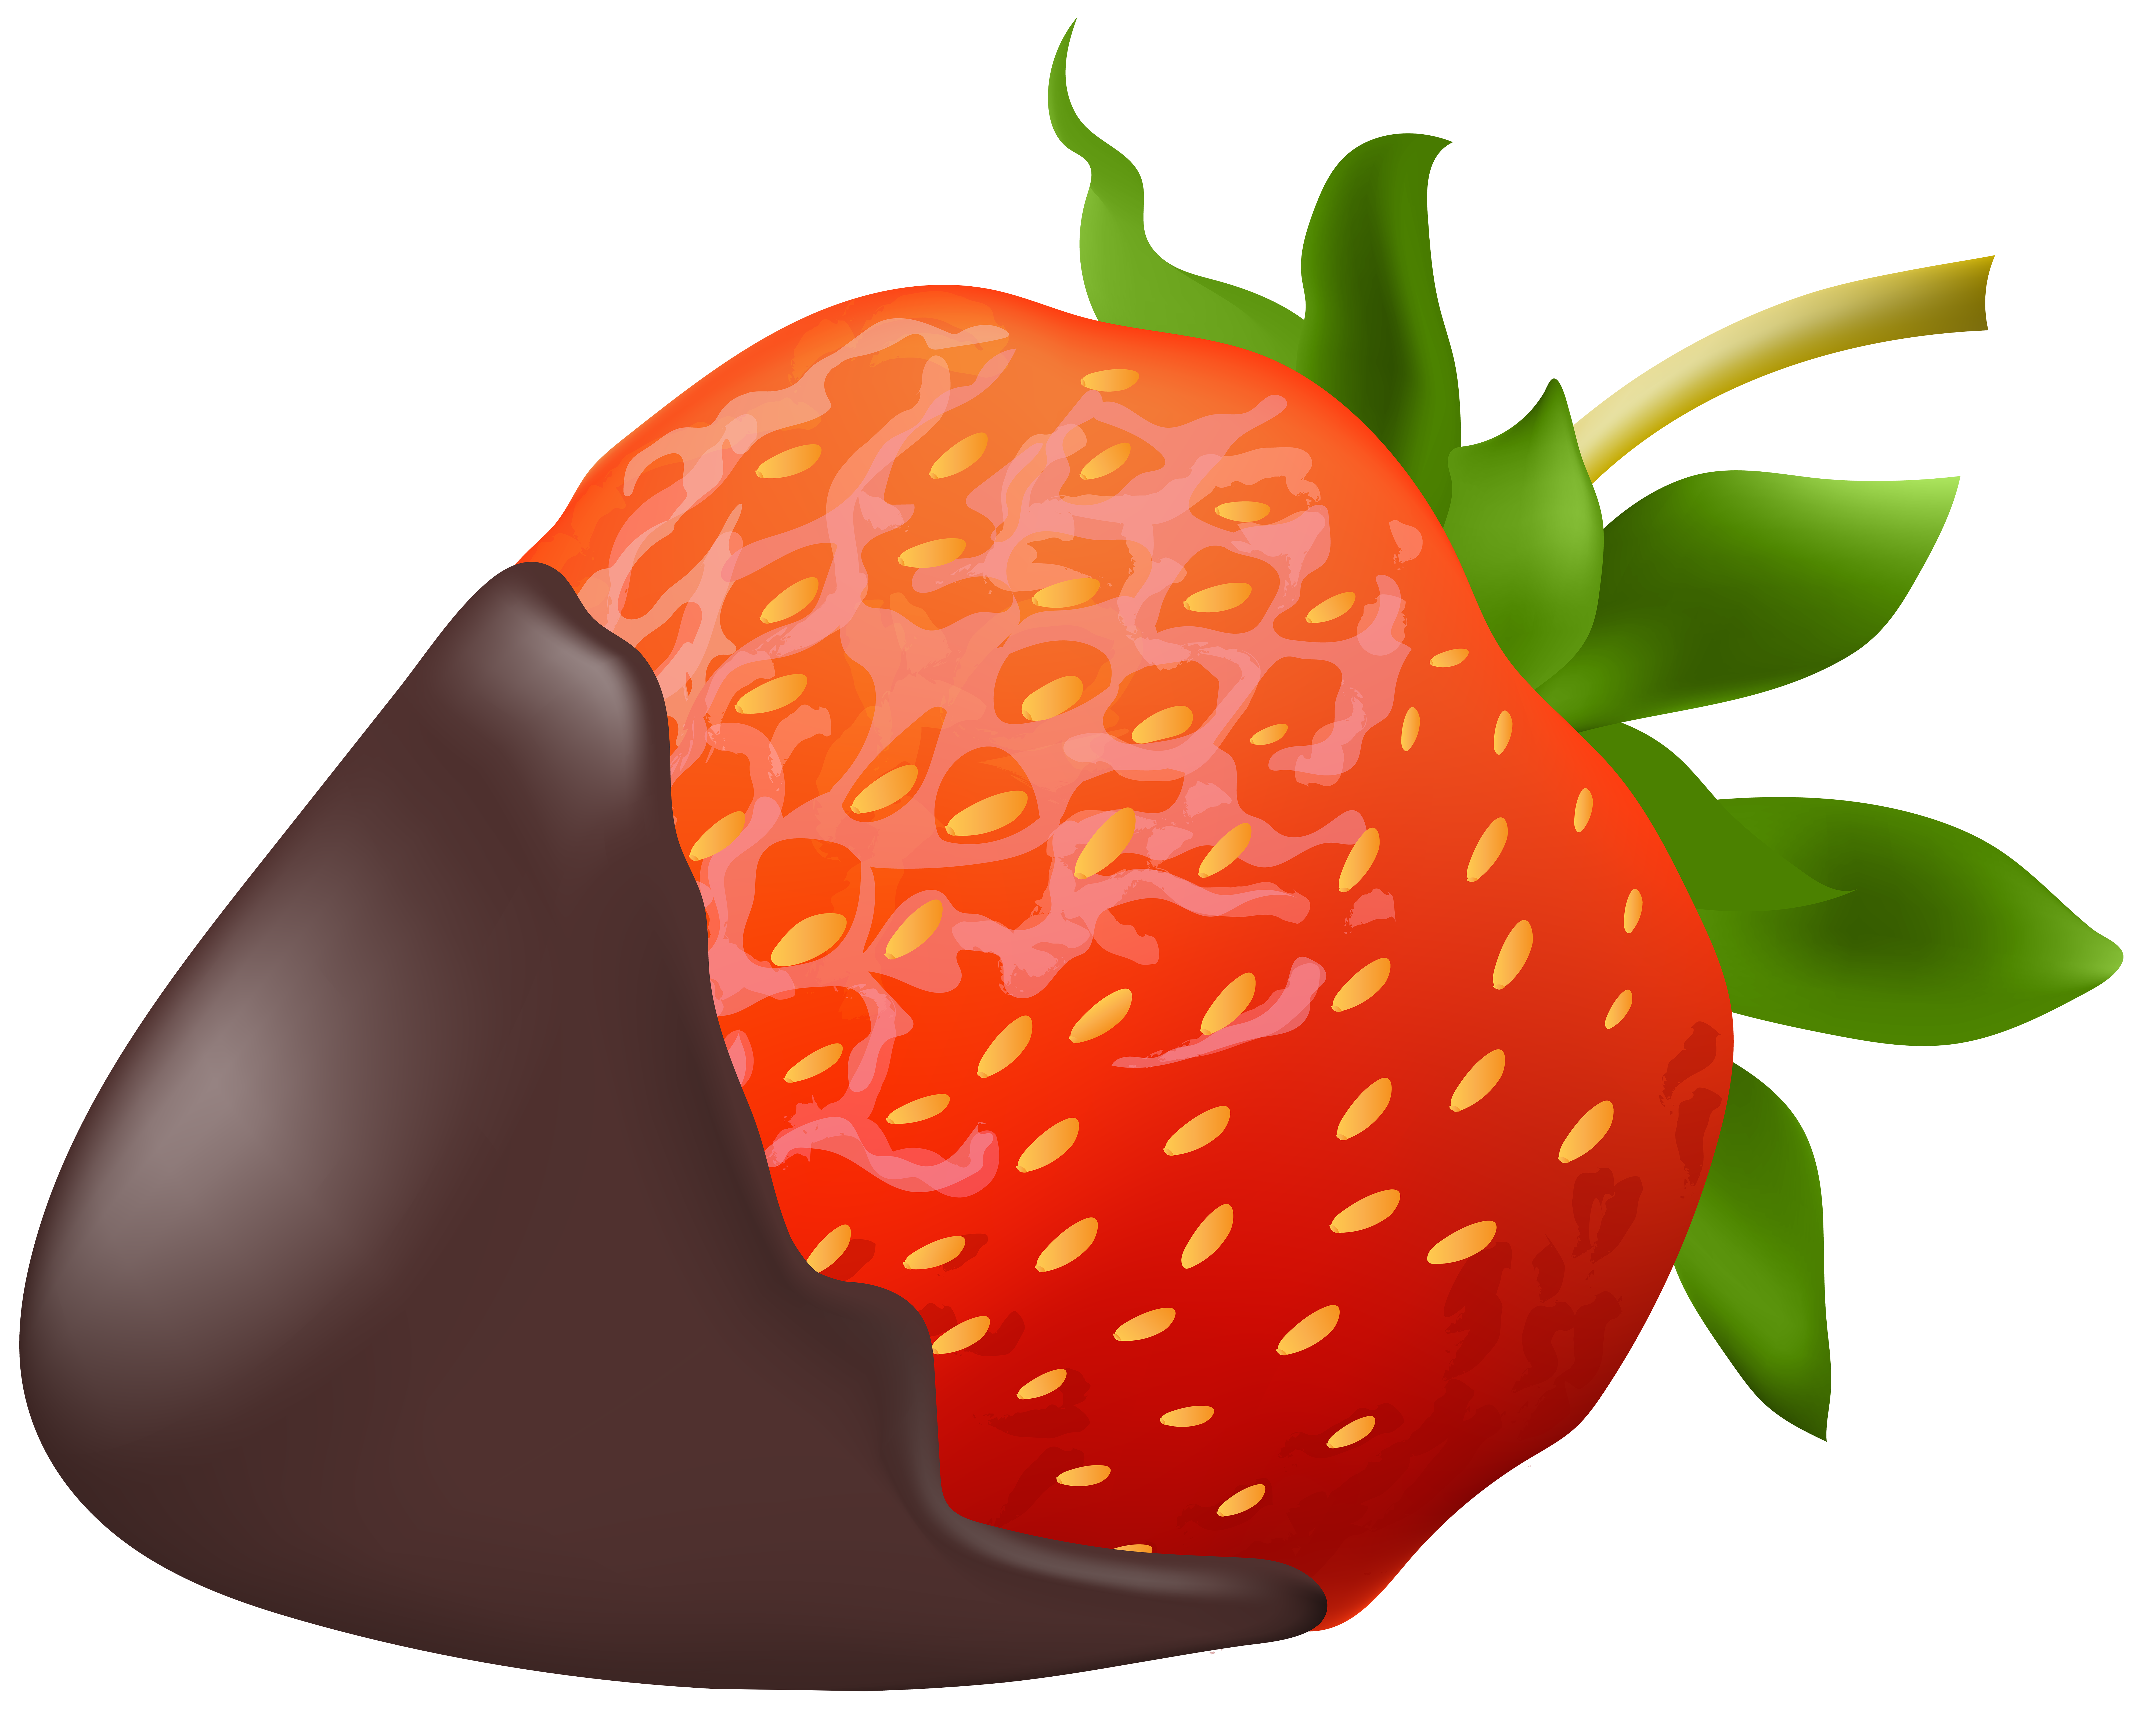 Strawberries clipart orange. Strawberry with chocolate png